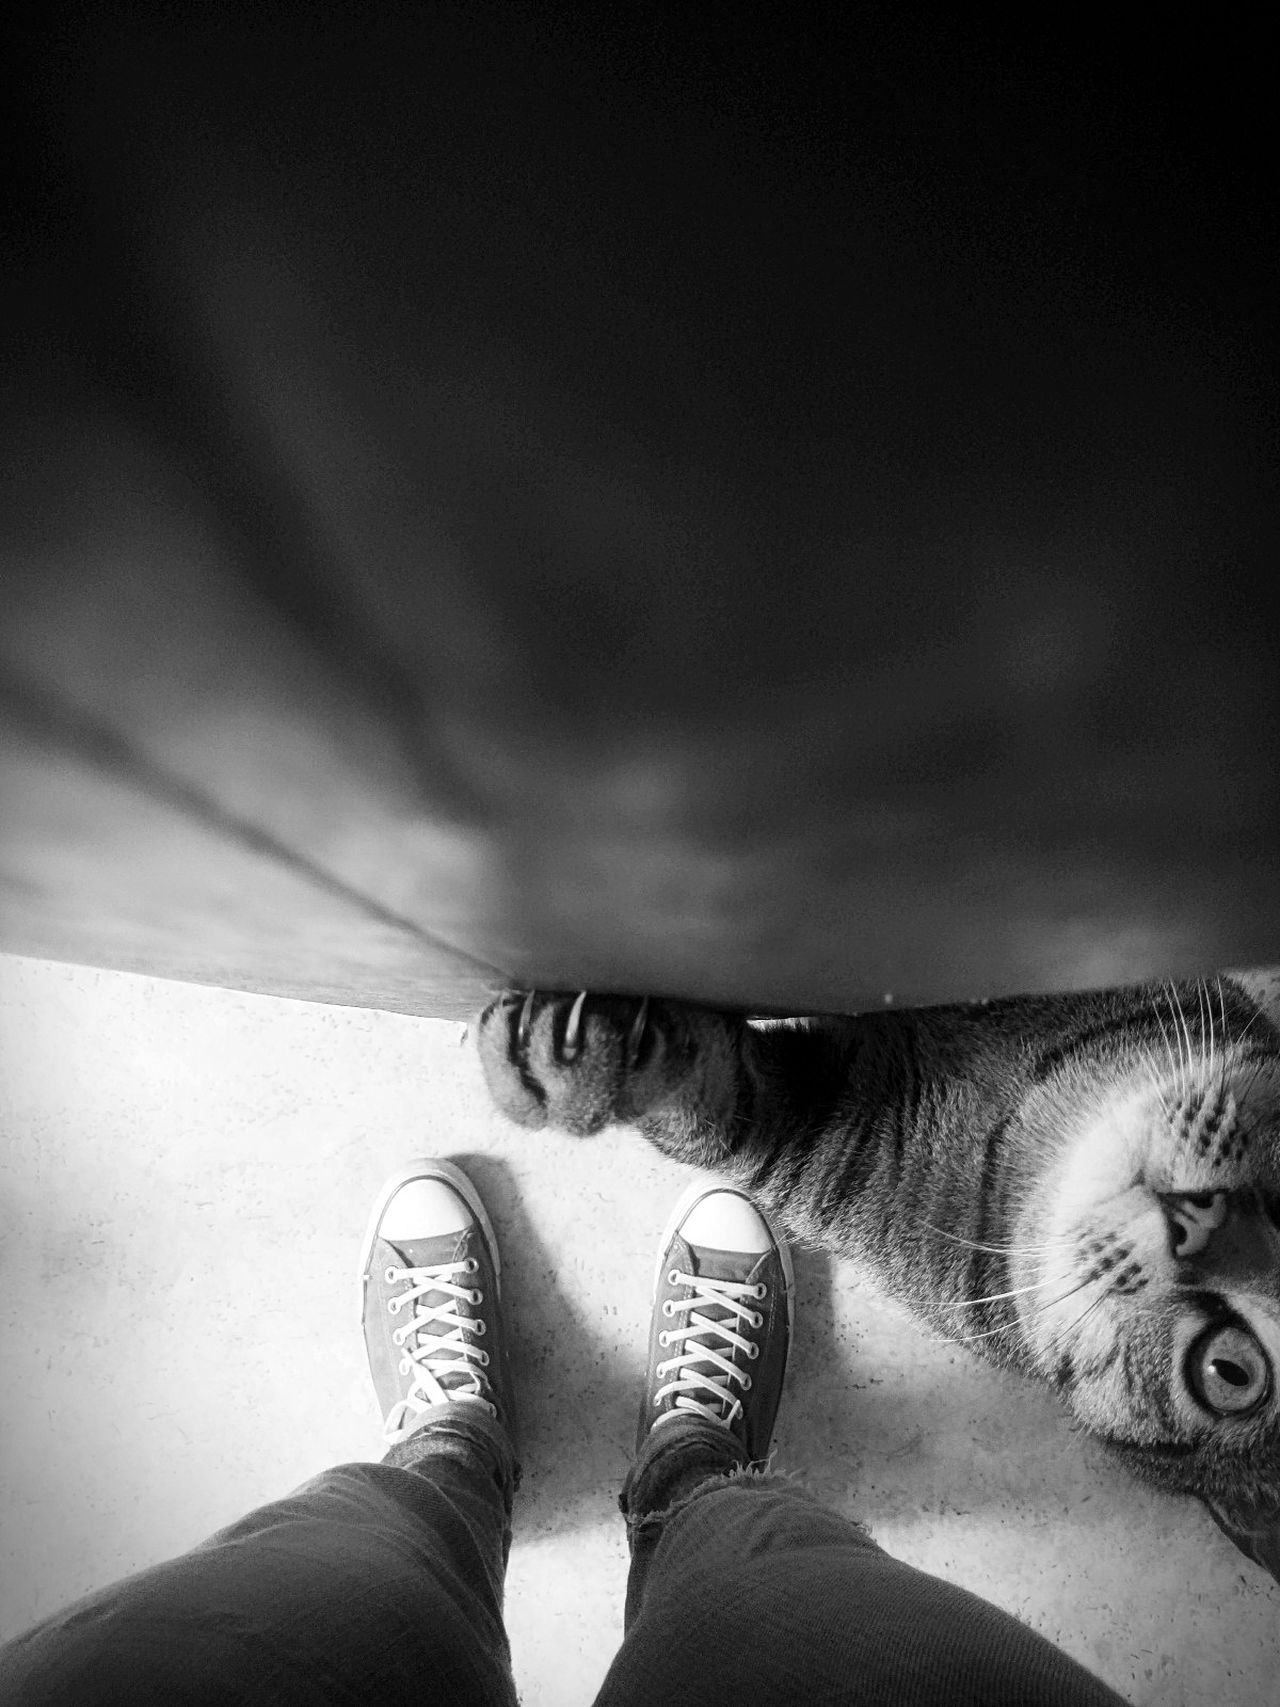 Human Leg Personal Perspective Human Body Part Indoors  Domestic Animals Animal Themes Light And Shadow Pets Mycat Sweet Moments Mypetisbetterthanyours Domestic Cat Cat♡ Mycat♥ Animal_collection Photography Black And White Blackandwhite